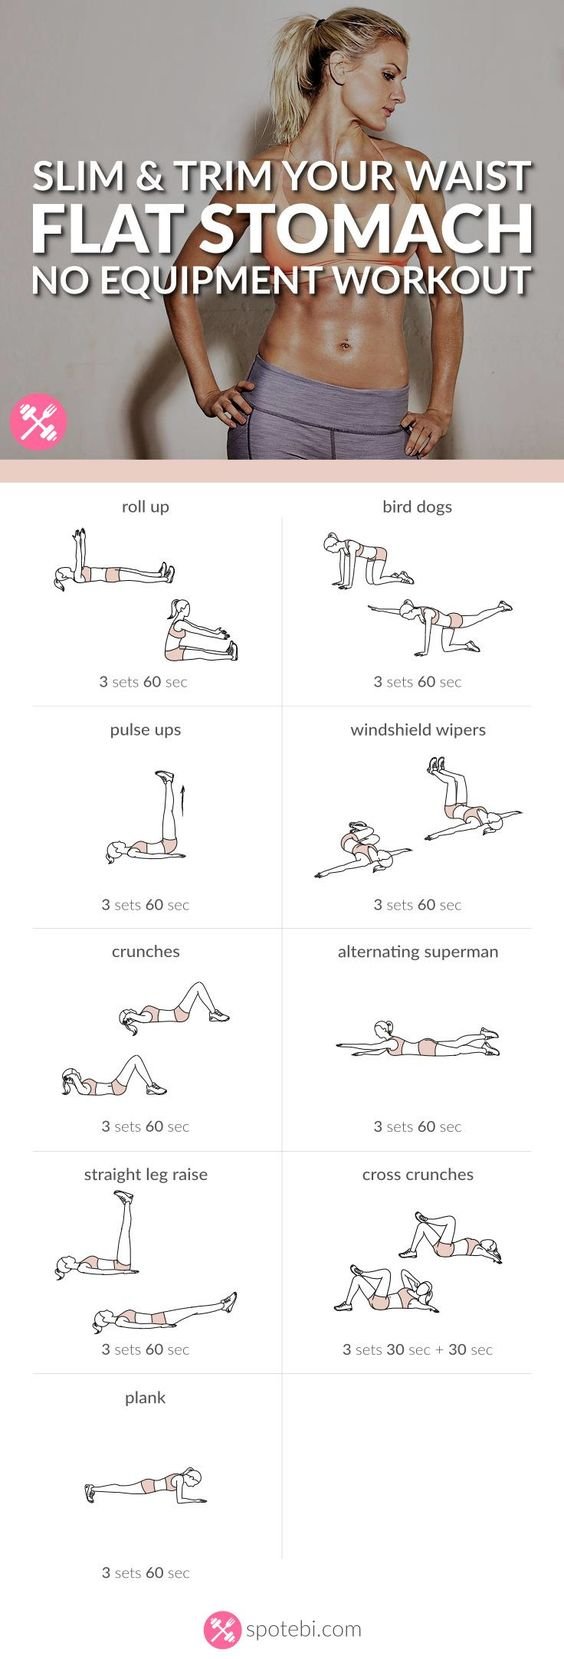 Workouts To Lose Weight Fast